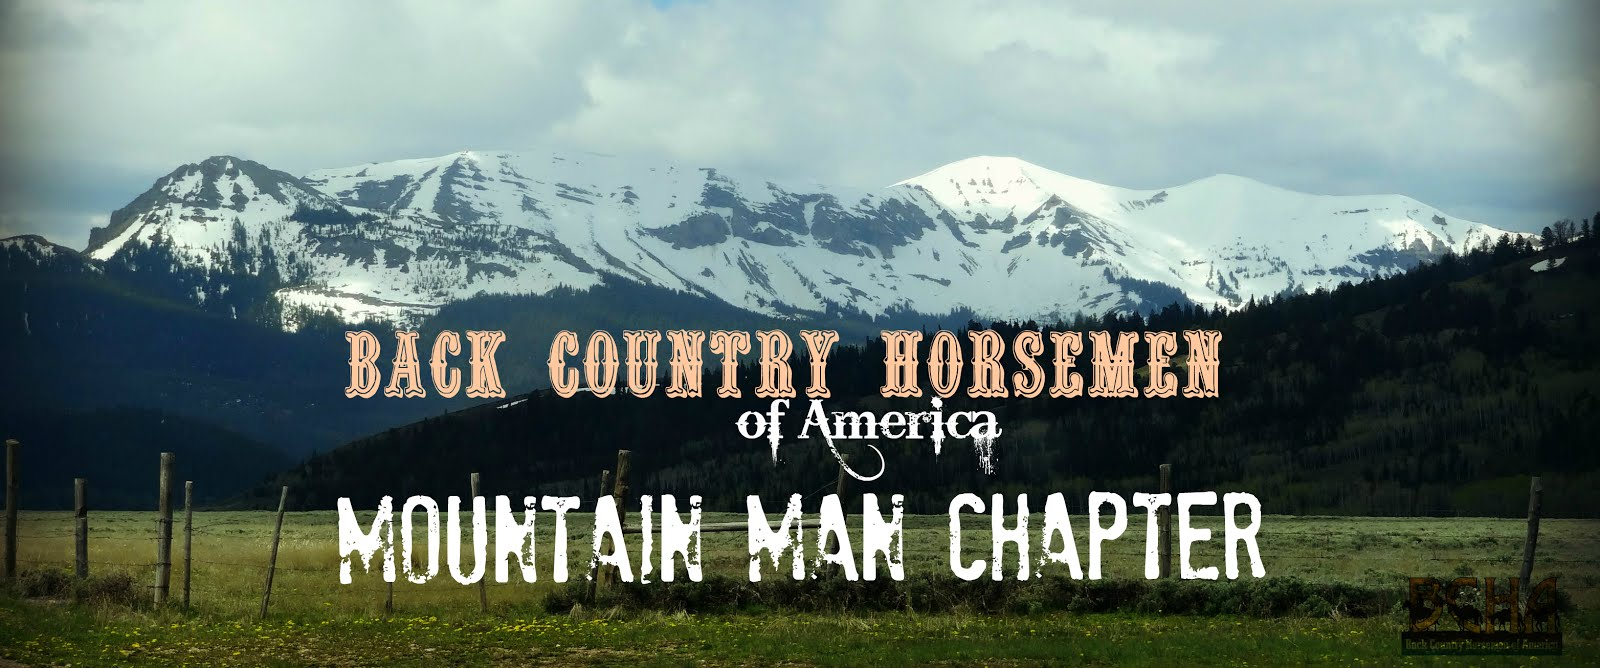 Mountain Man Chapter BCHA